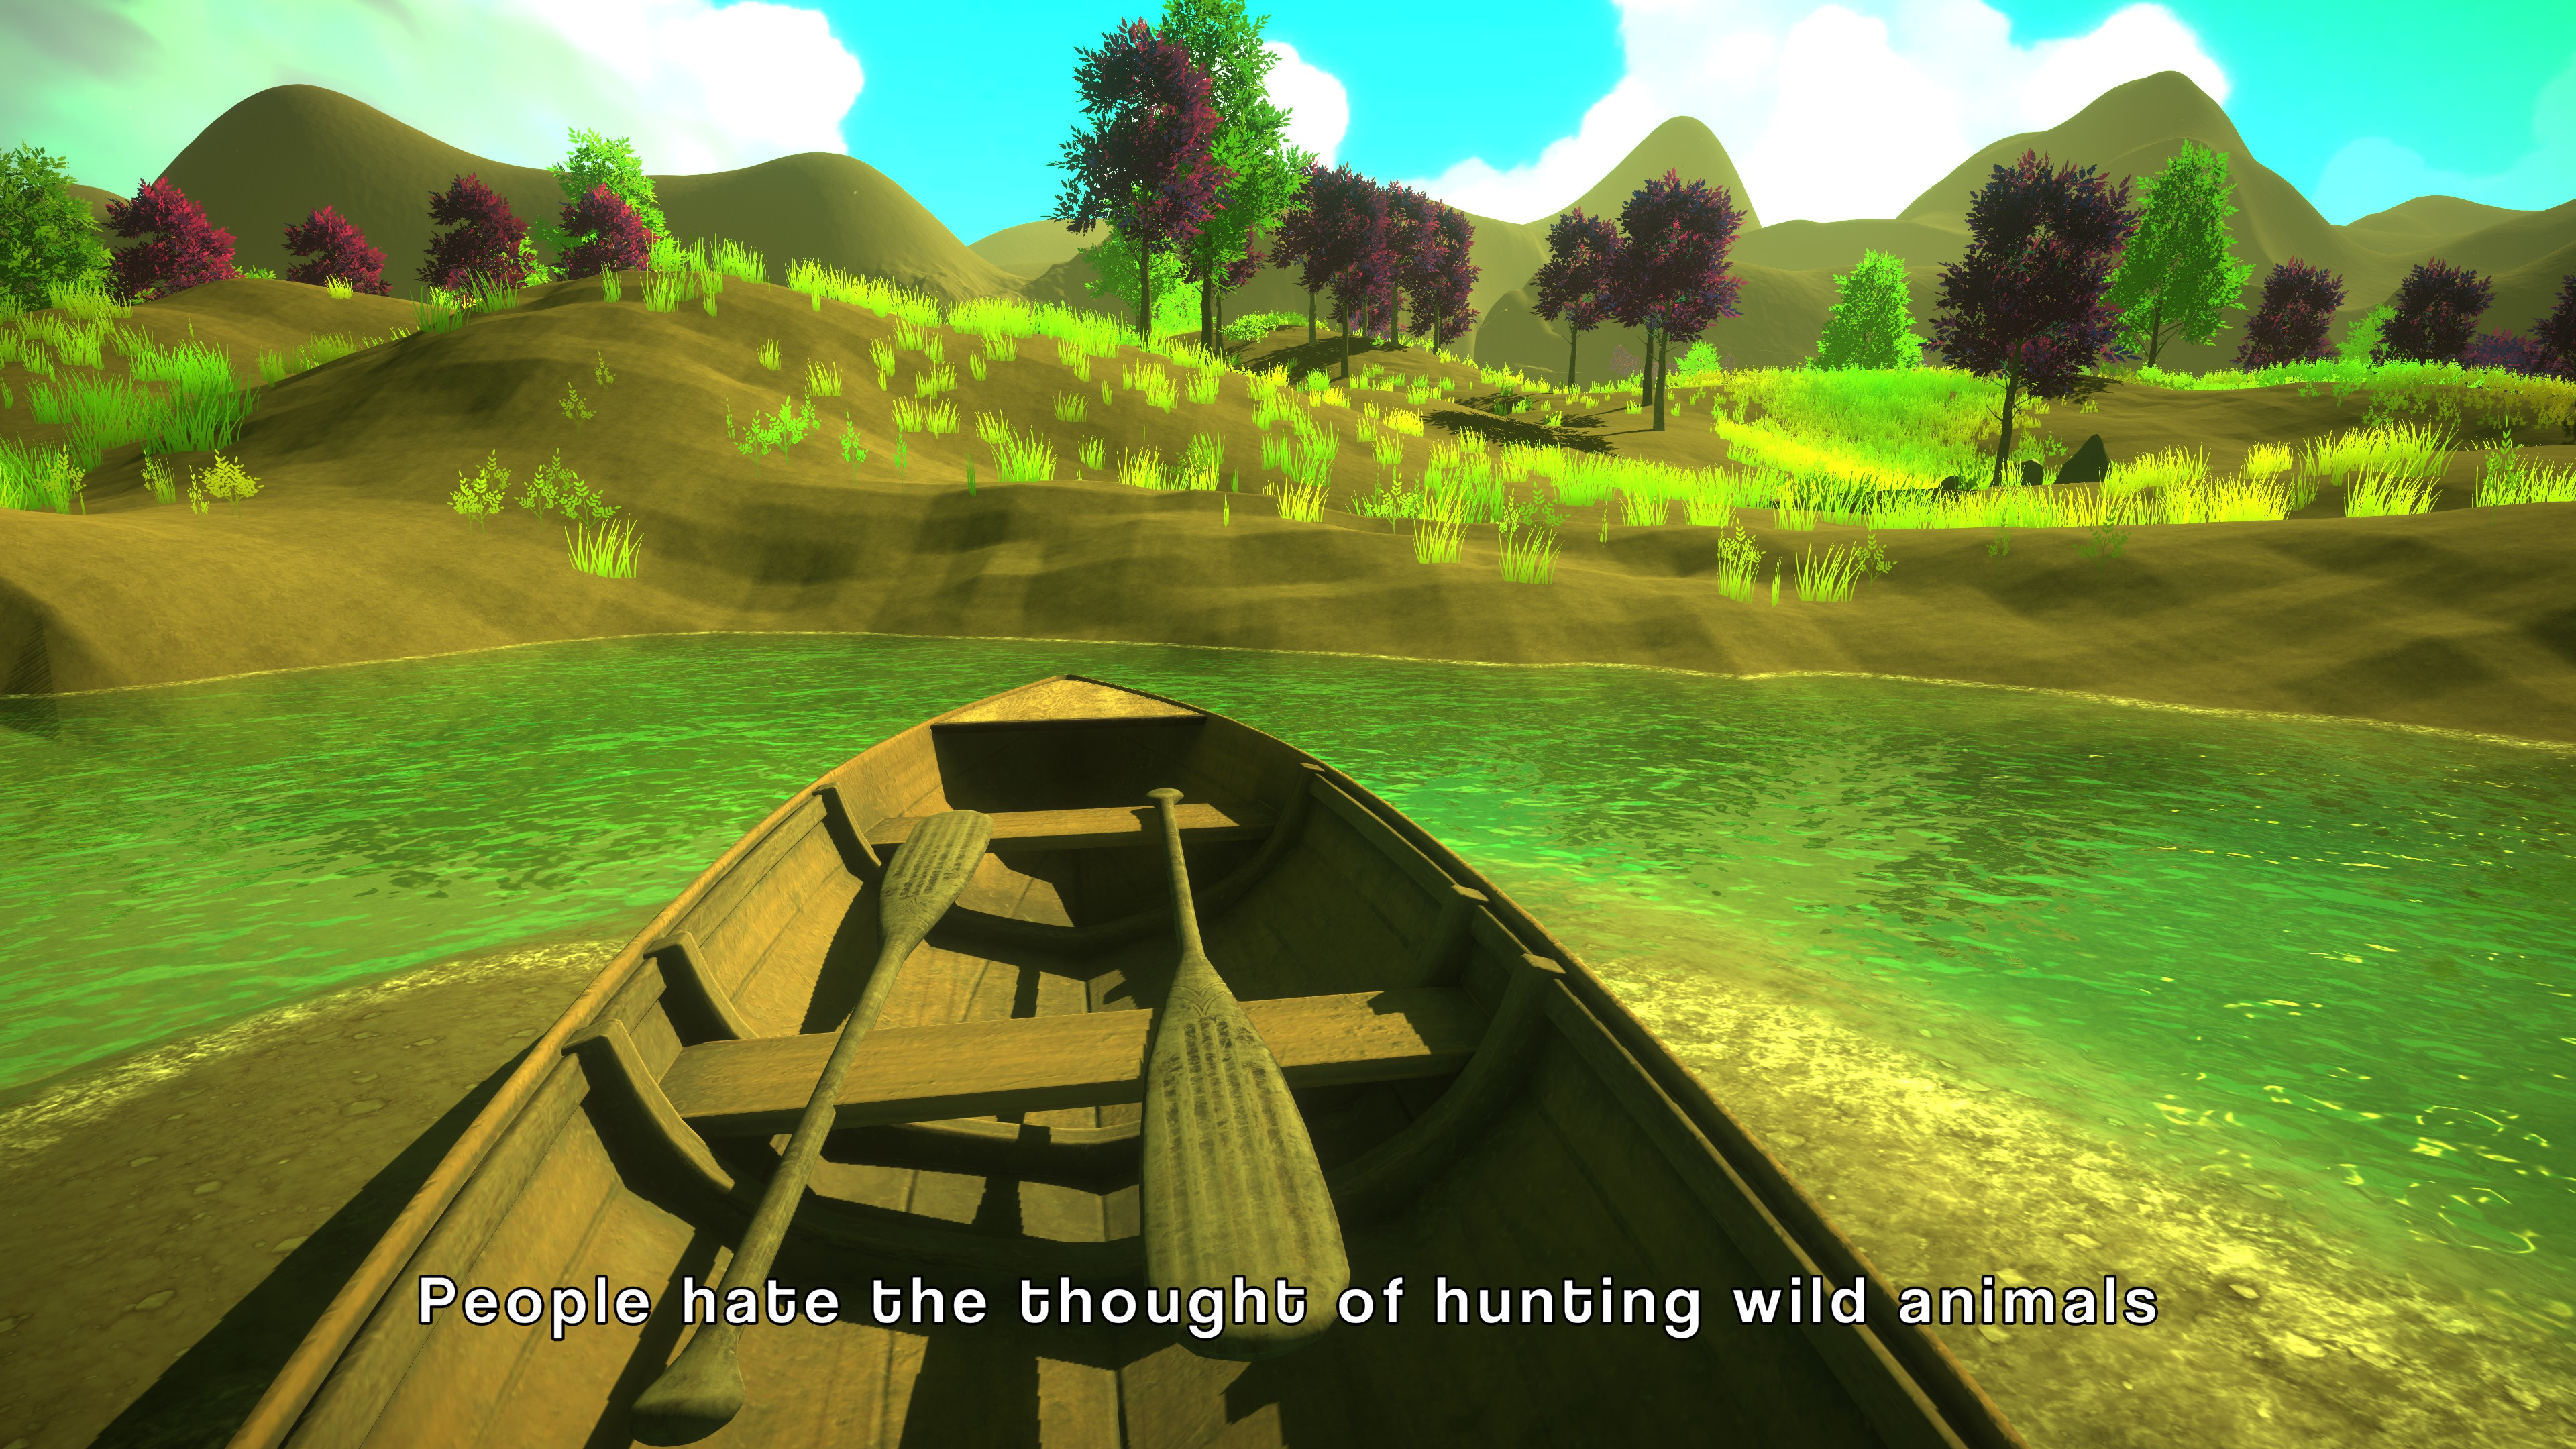 The First Friend. View from inside a beached rowboat. Subtitles say 'People hate the thought of hunting wild animals'.